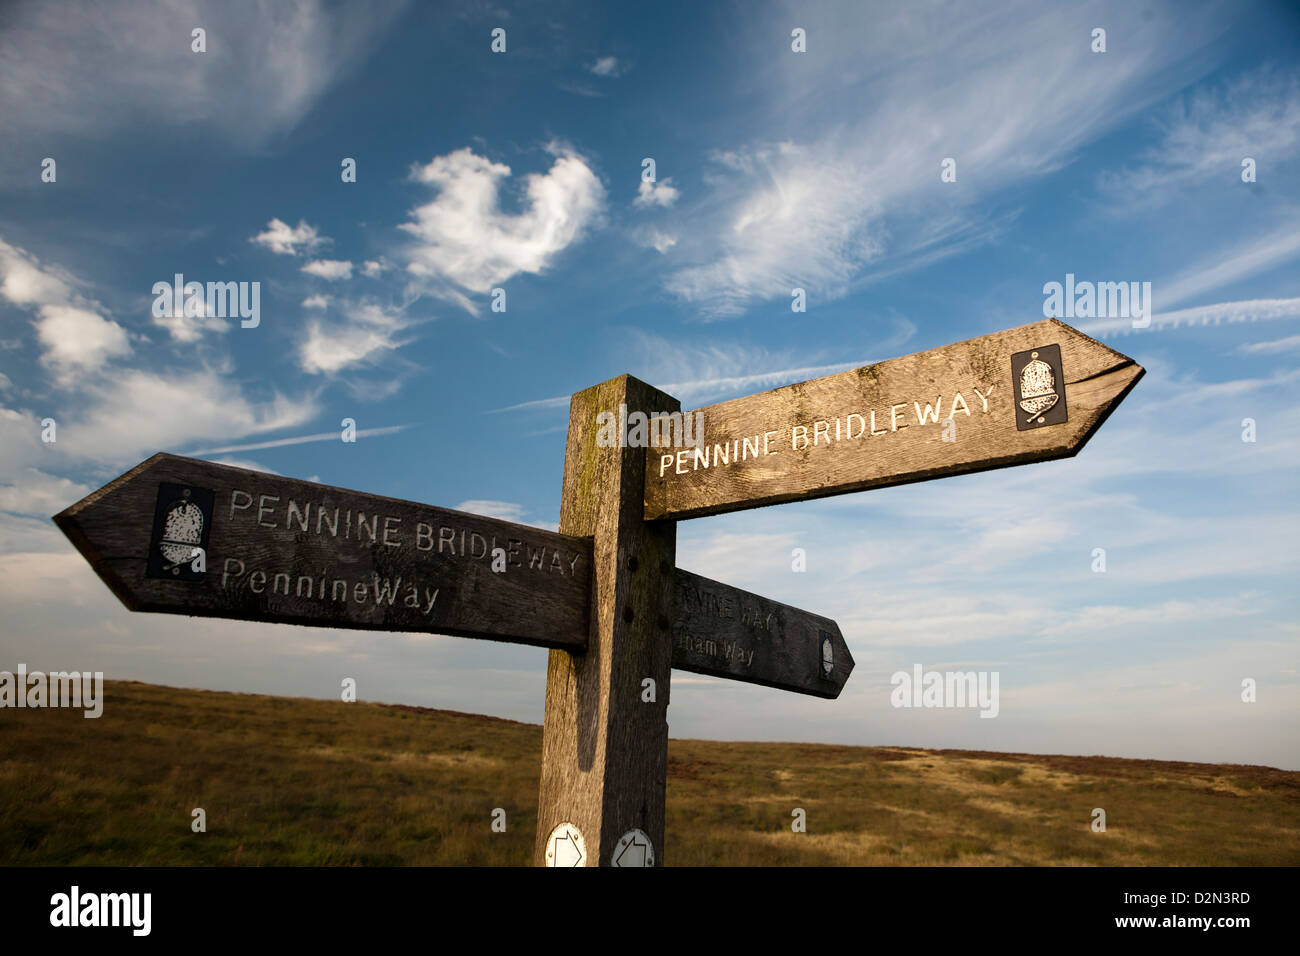 Waymarkers and way sign for Pennine  Bridleway at Standedge near Marsden - Stock Image